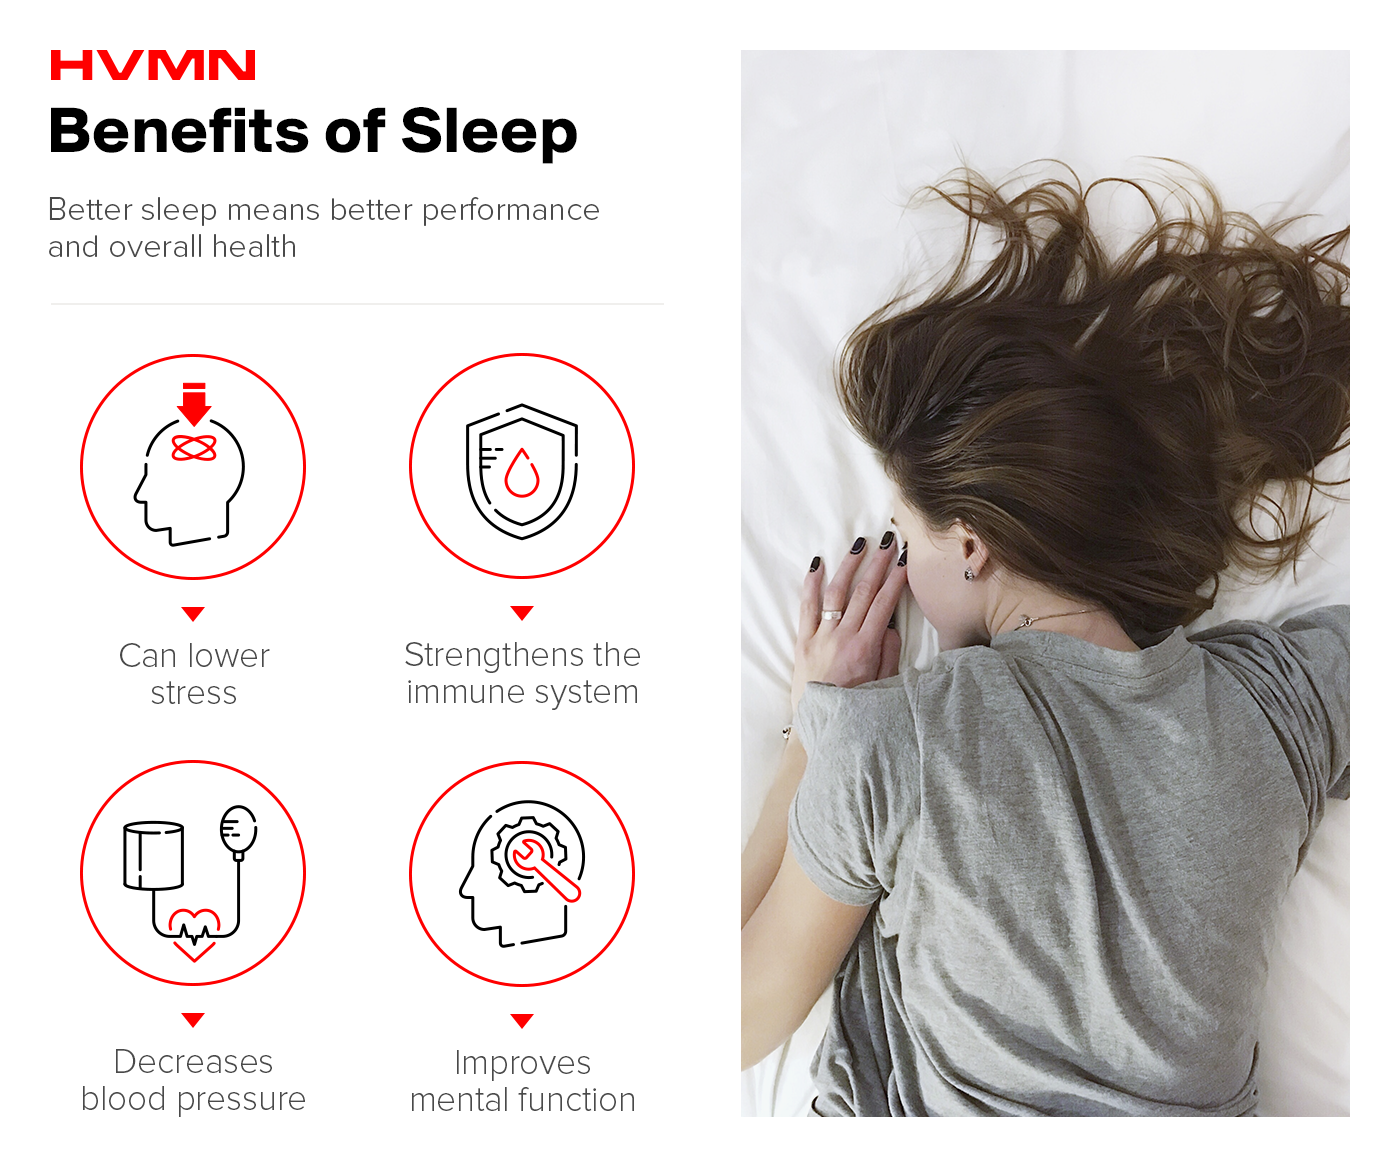 Illustrations of a brain, a drop of blood in a shield, a blood pressure monitor and a brain, showing all the benefits of sleep